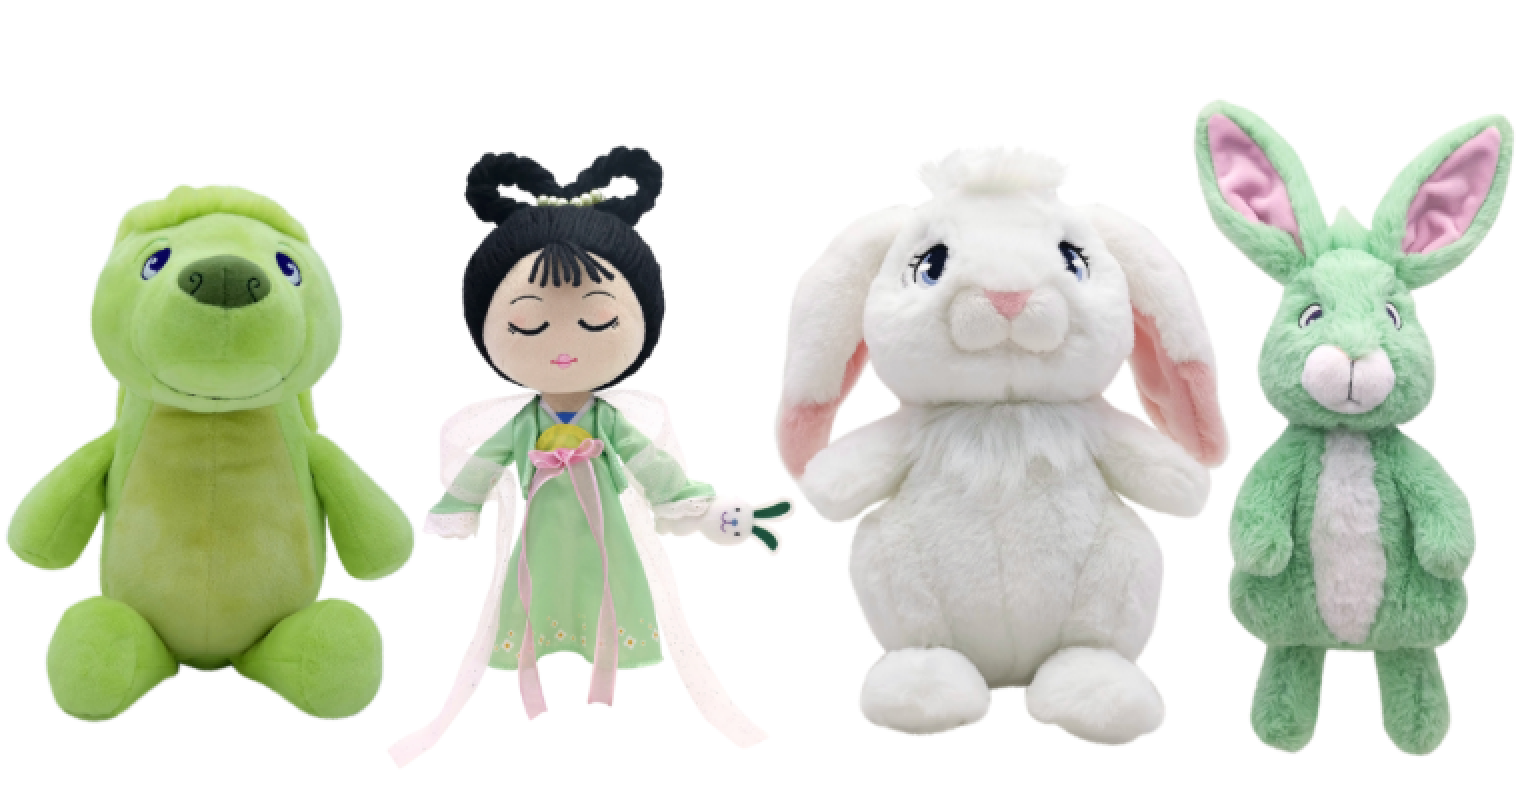 Netflix's Over the Moon is getting a doll and plush line from Mattel 14